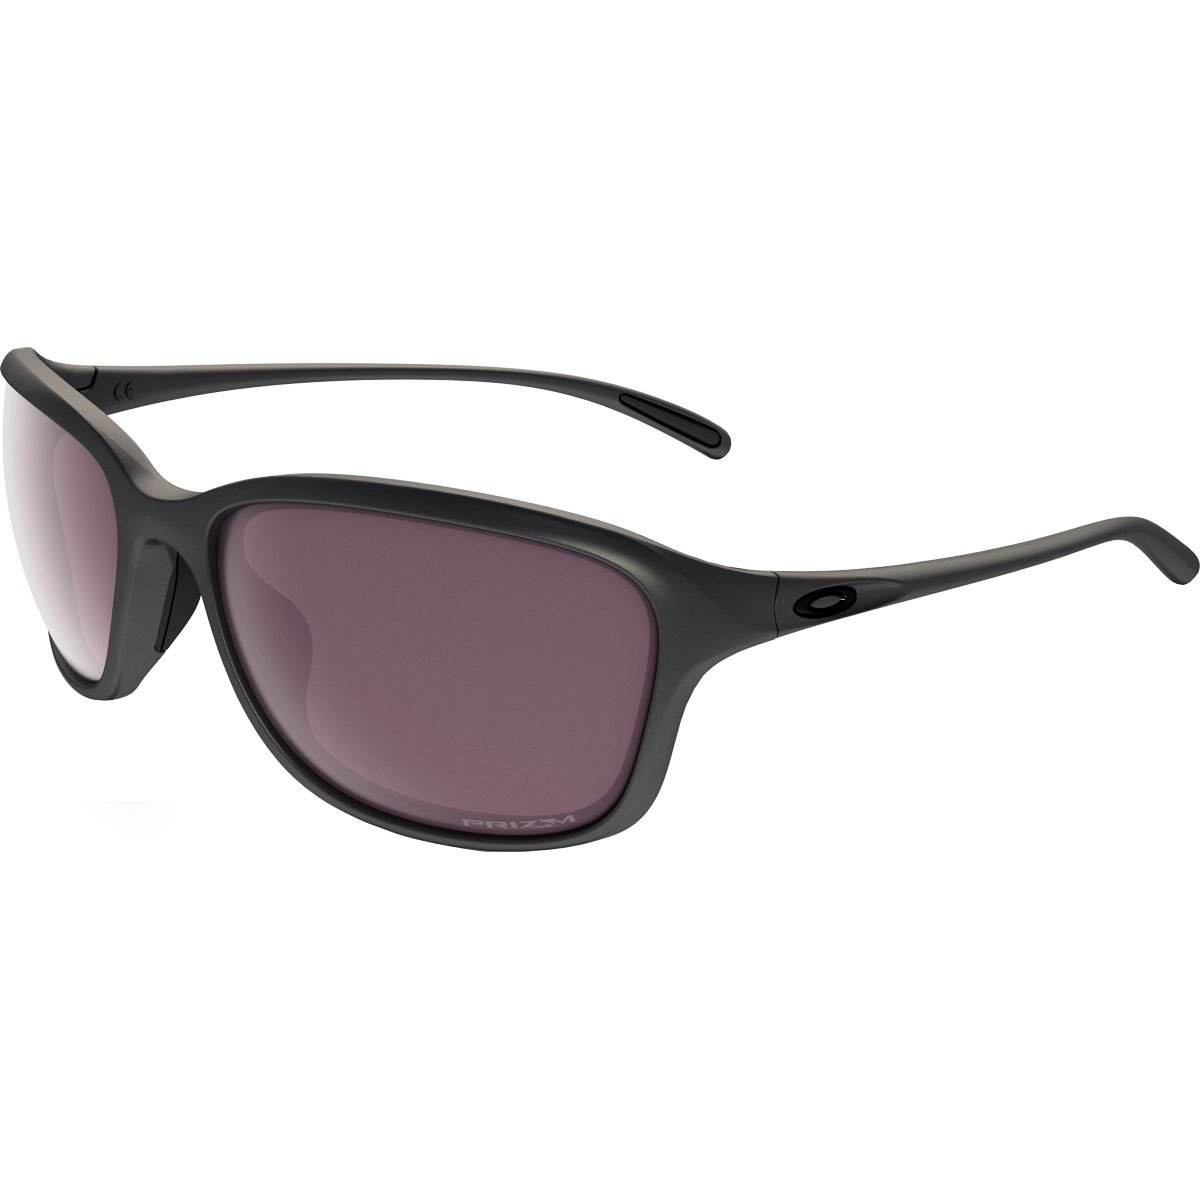 Oakley Women's She's Unstoppable Polarized Round Sunglasses, Steel, 57 mm by Oakley